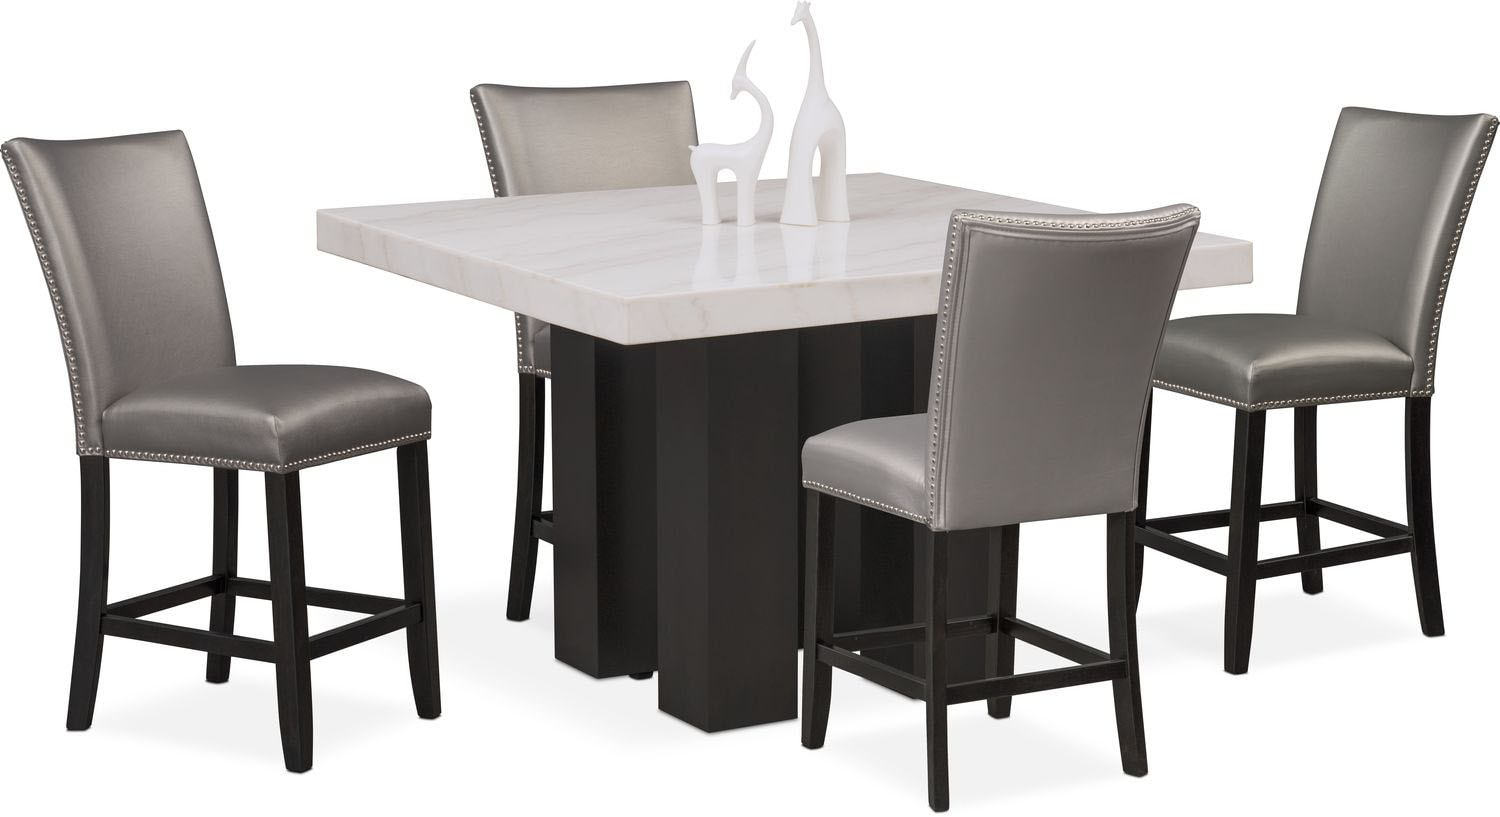 Artemis Counter-Height Dining Table and 4 Upholstered Stools - Gray ...